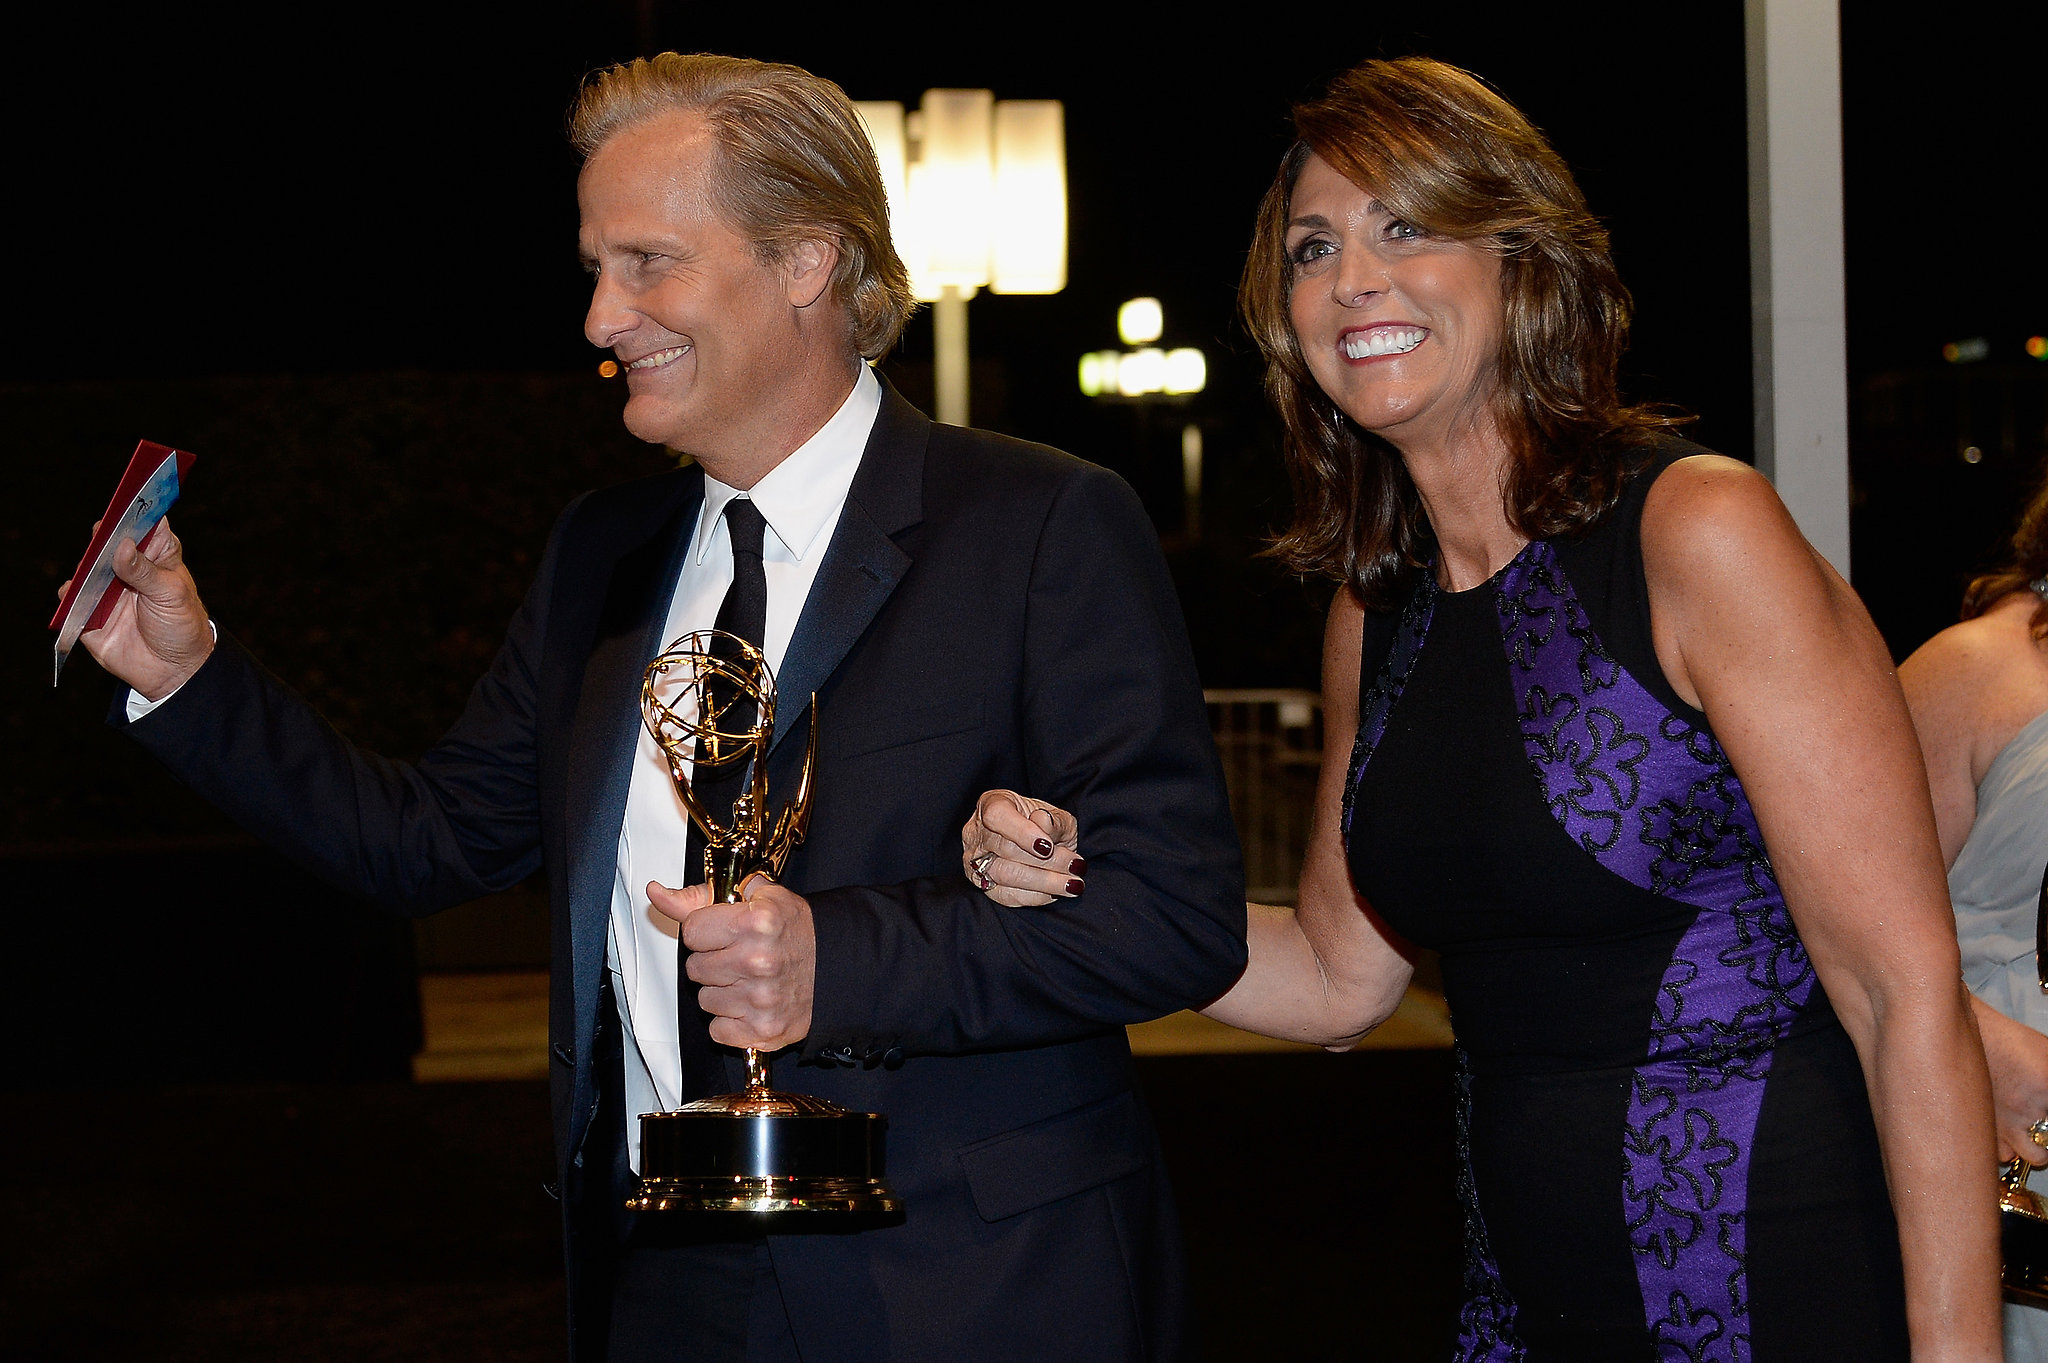 Jeff Daniels celebrated his win with wife, Kathleen Treado ...